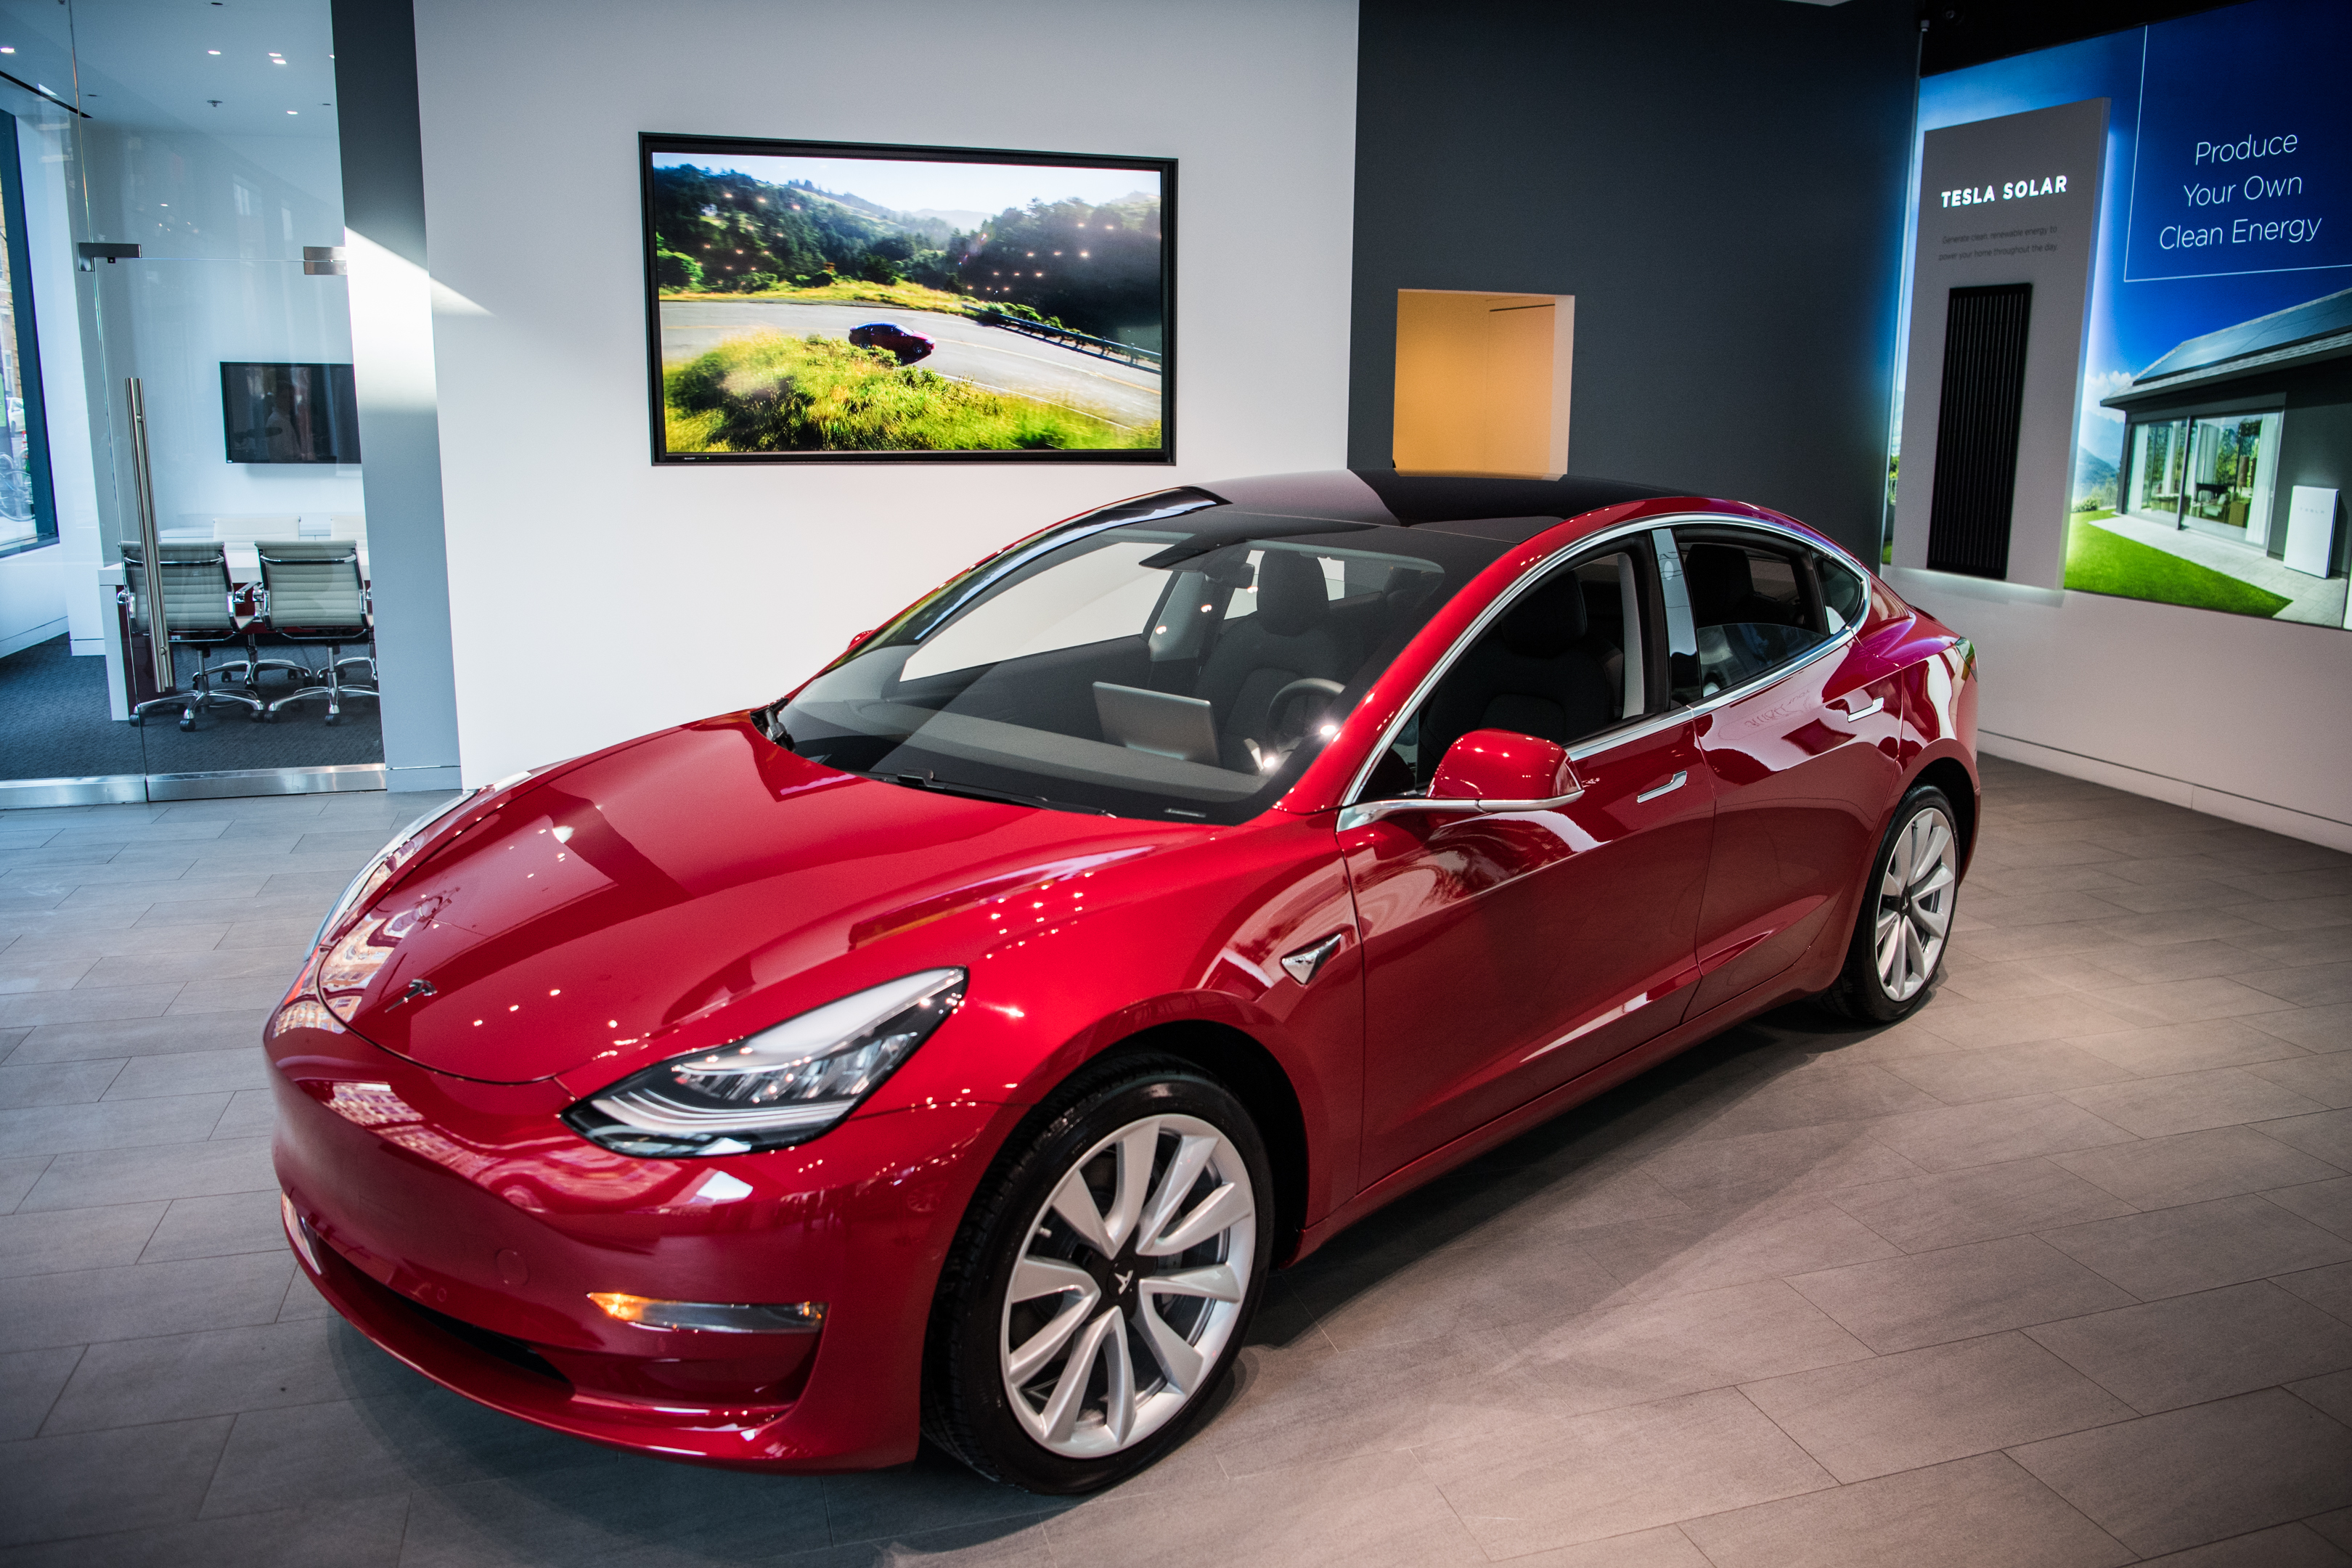 For Tesla, a successful Model 3 could go a long way toward easing its financial concerns (here's the car on display at the Tesla Store in Washington, DC).